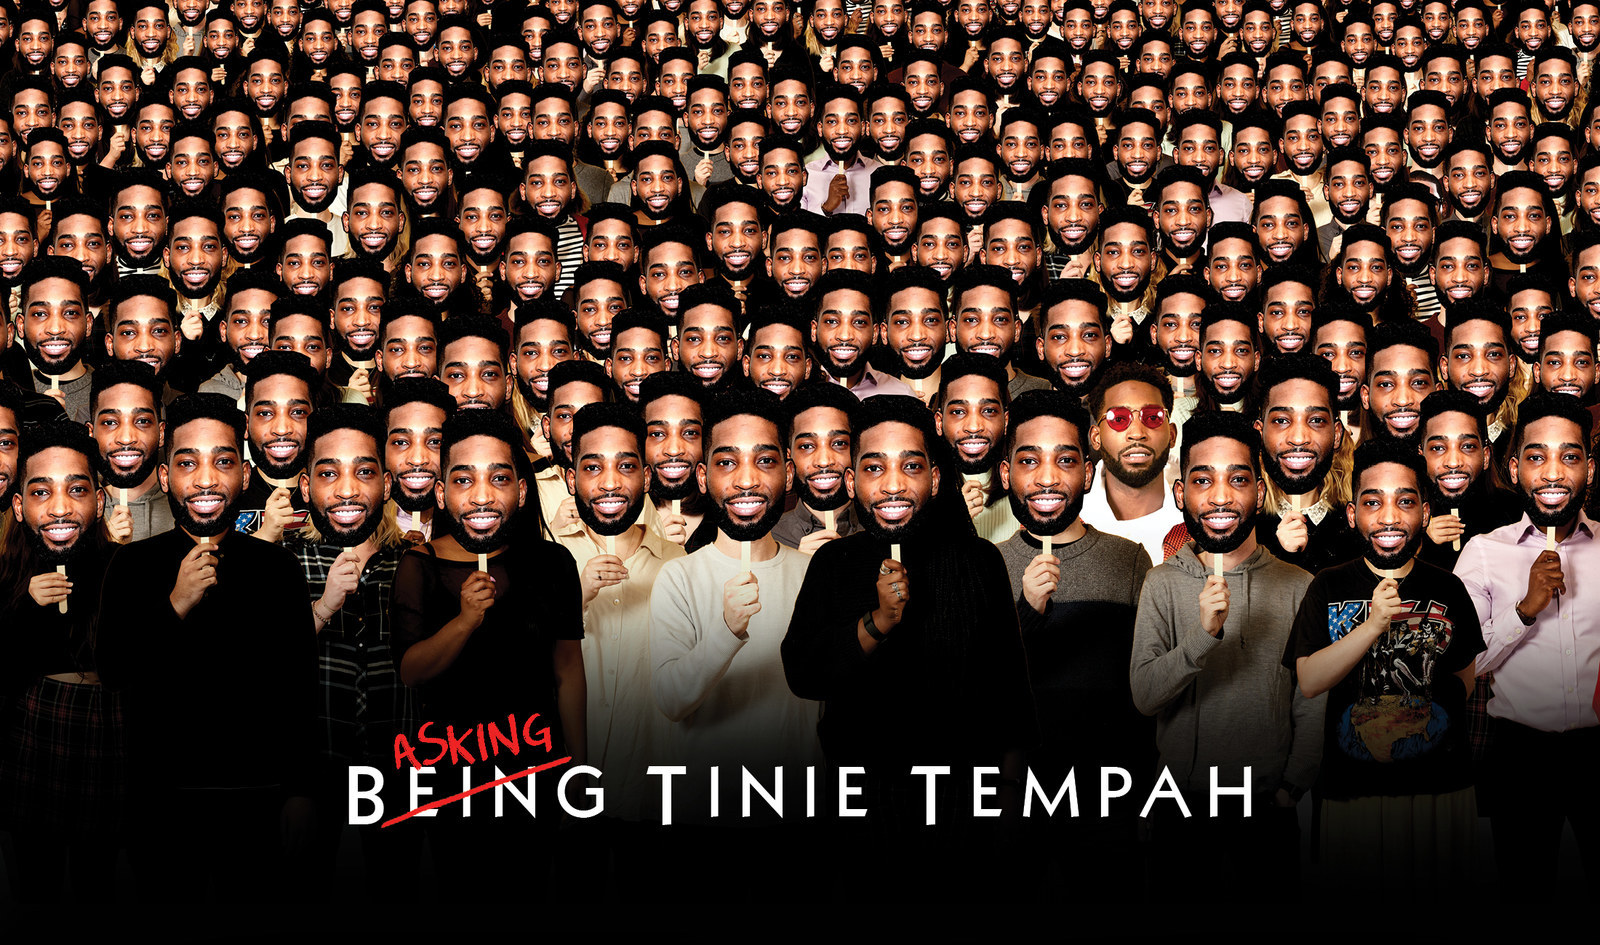 we asked tinie tempah for life advice and now we're all infinitely better human beings - BUZZFEED - The best-dressed man in UK music helped us get our lives together.